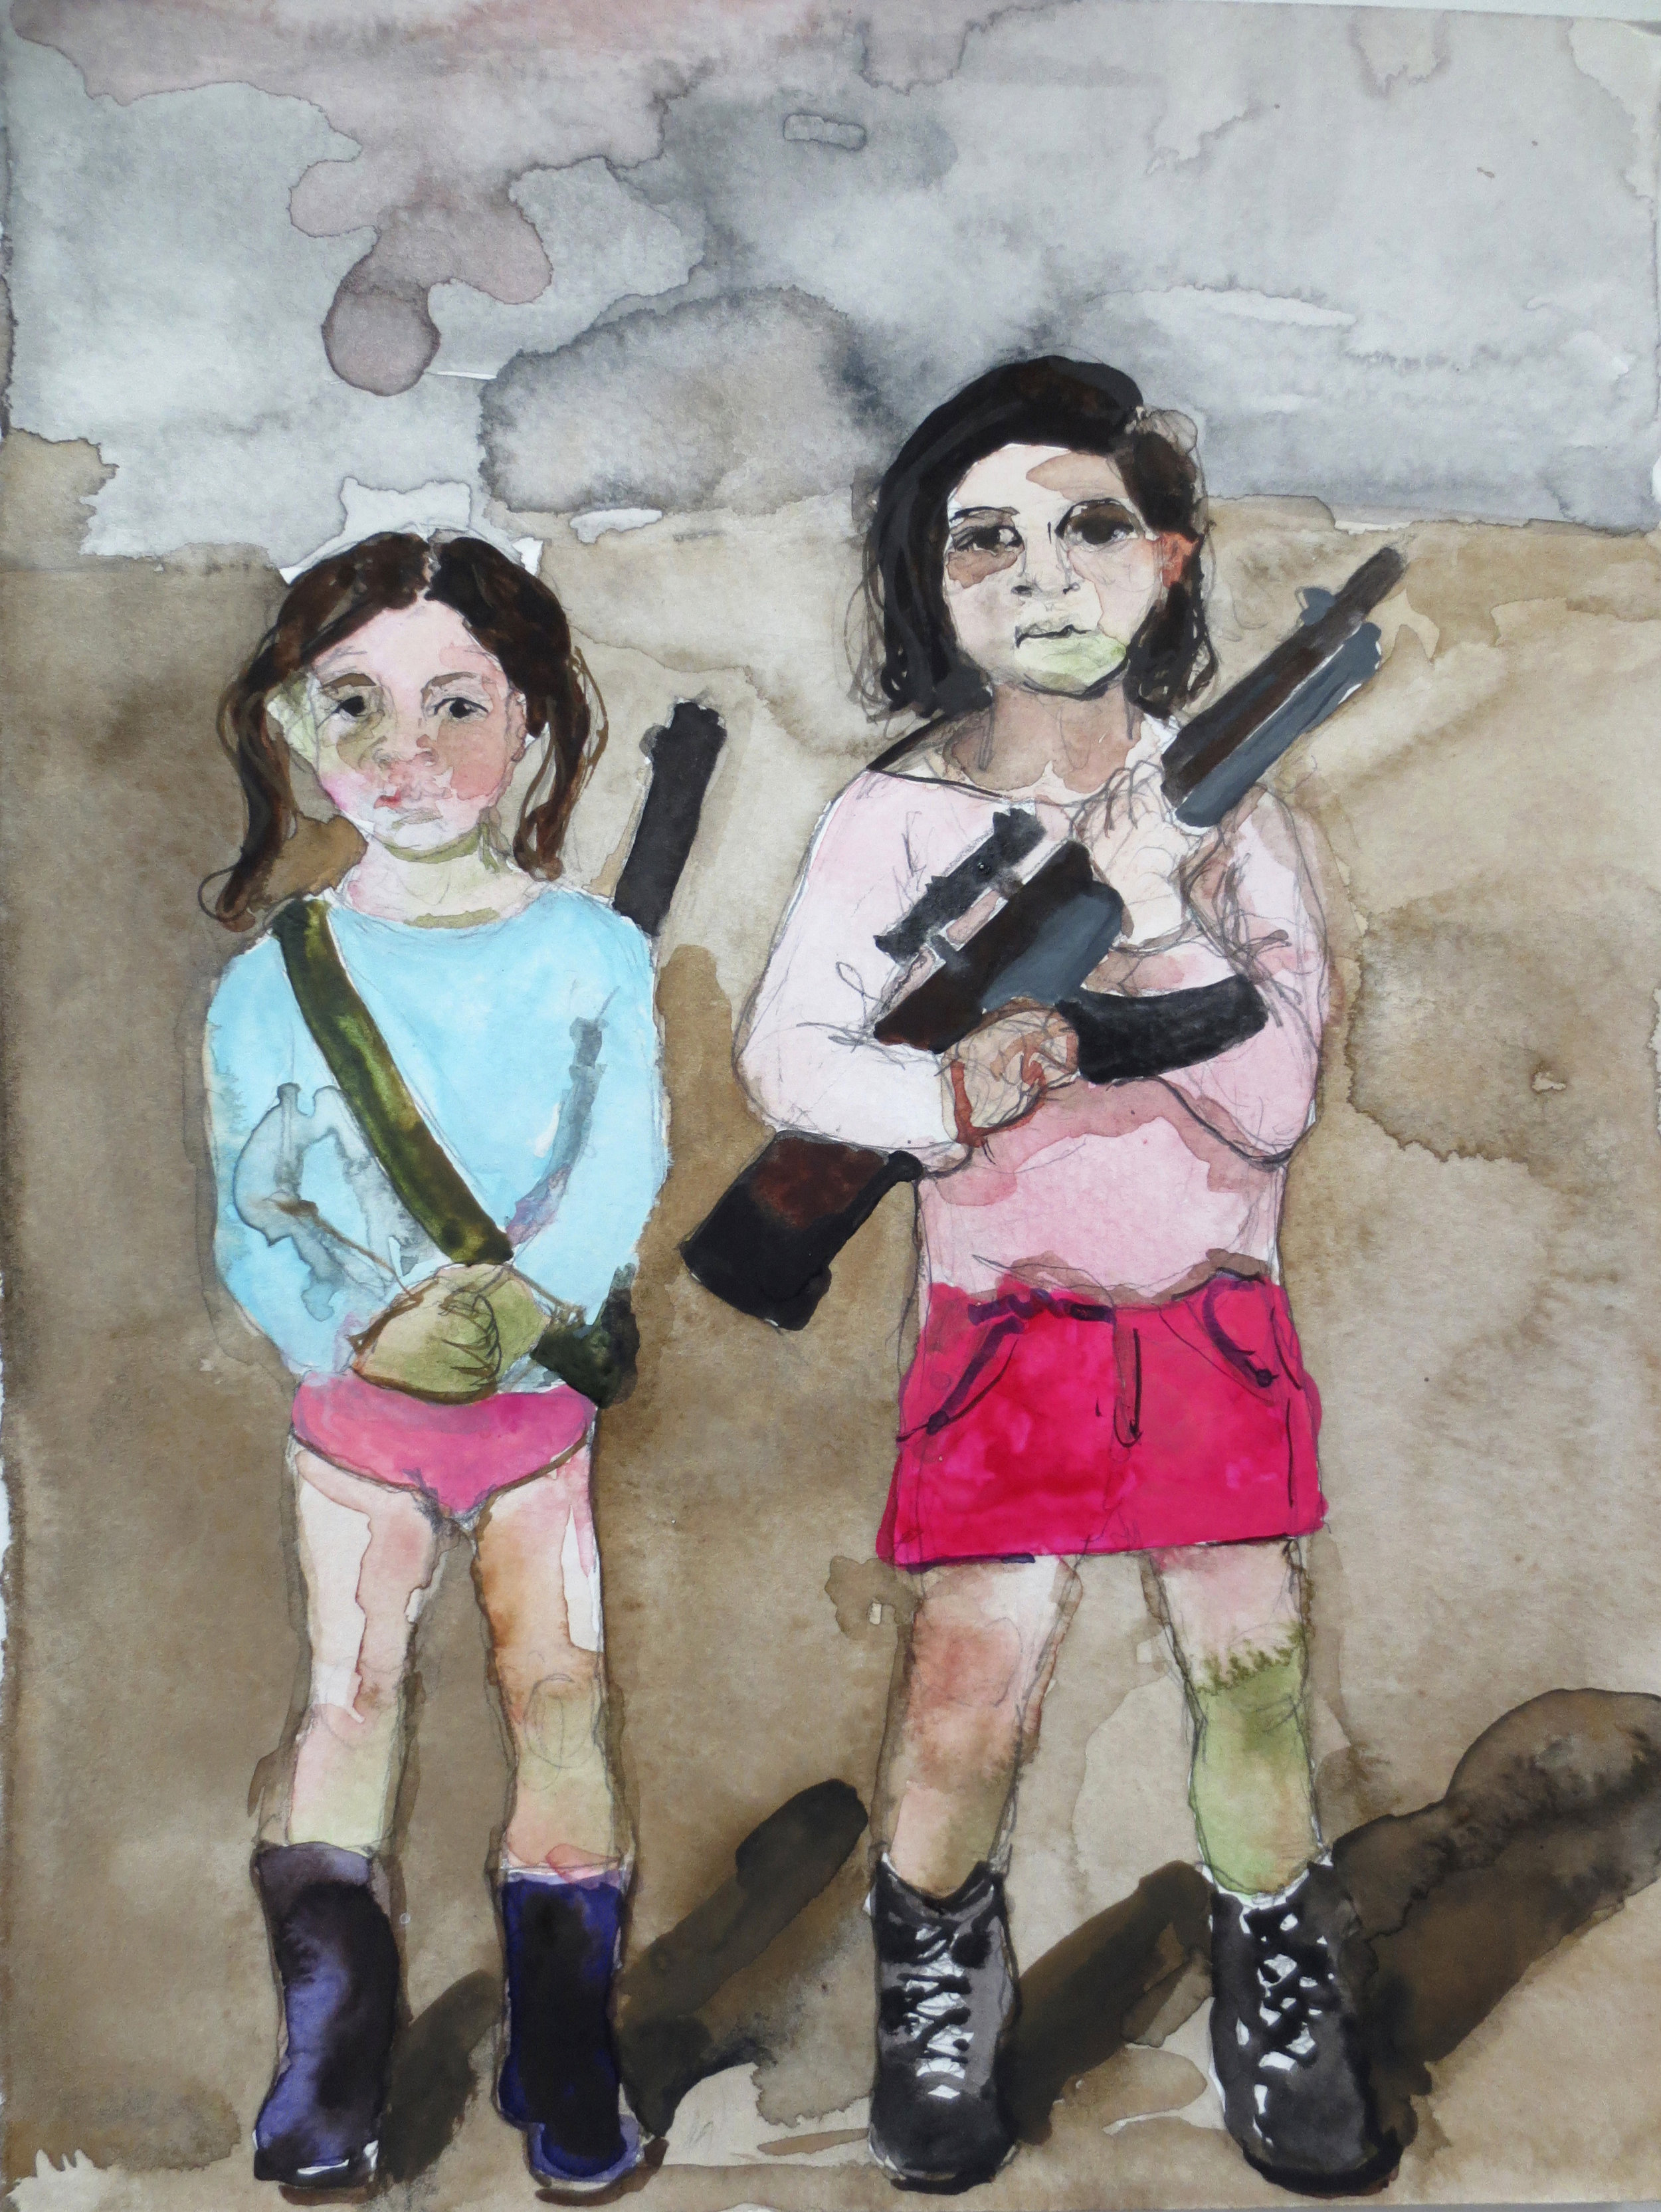 Girls with Guns, 2012, Graphite and watercolor on paper, 12 x 9 in.